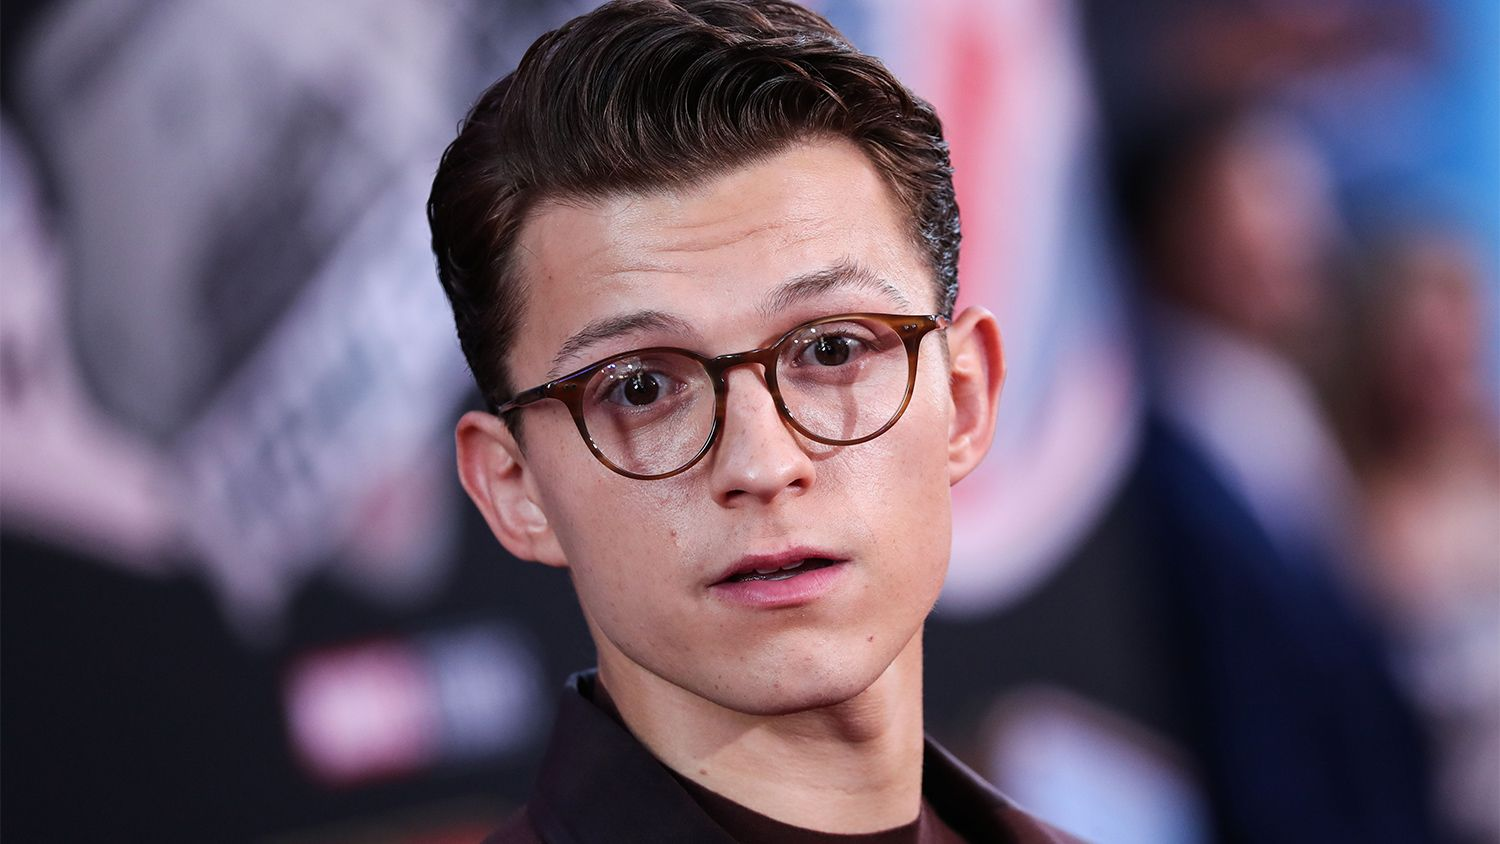 Spider-Man bosses just revealed film number 3's REAL title in the best way ever